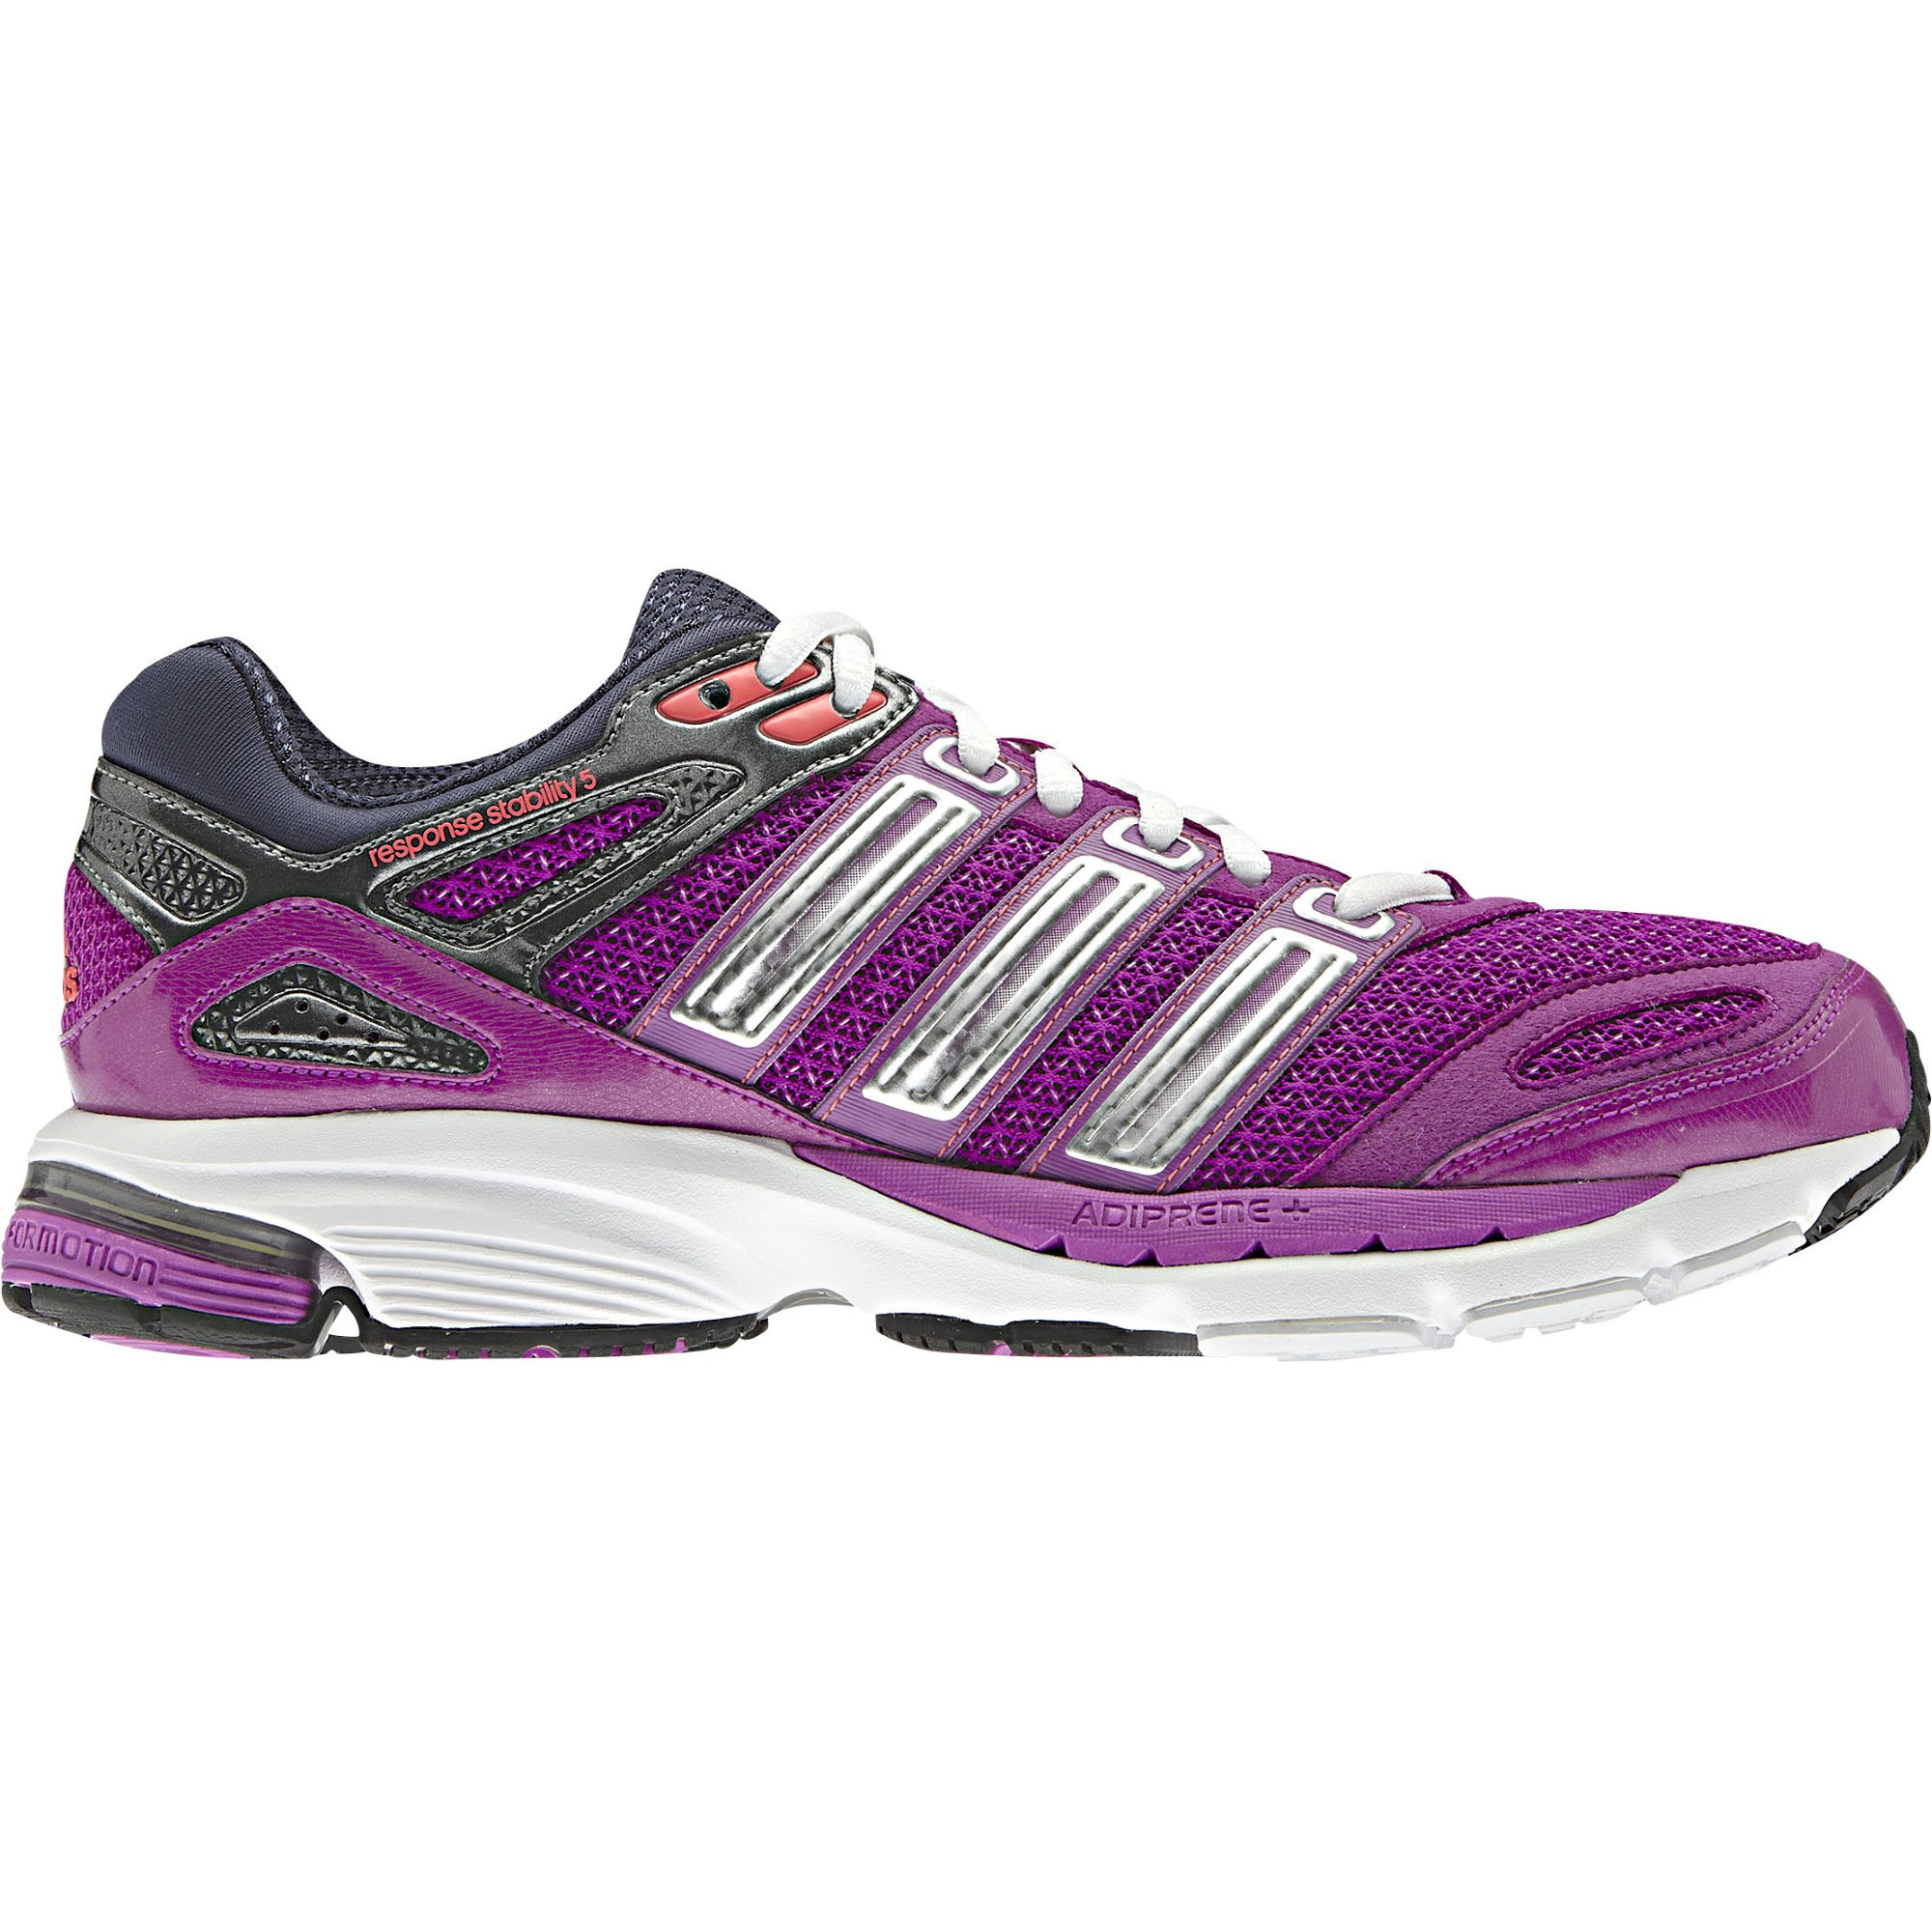 Wiggle | Adidas Ladies Response Stability 5 Shoes